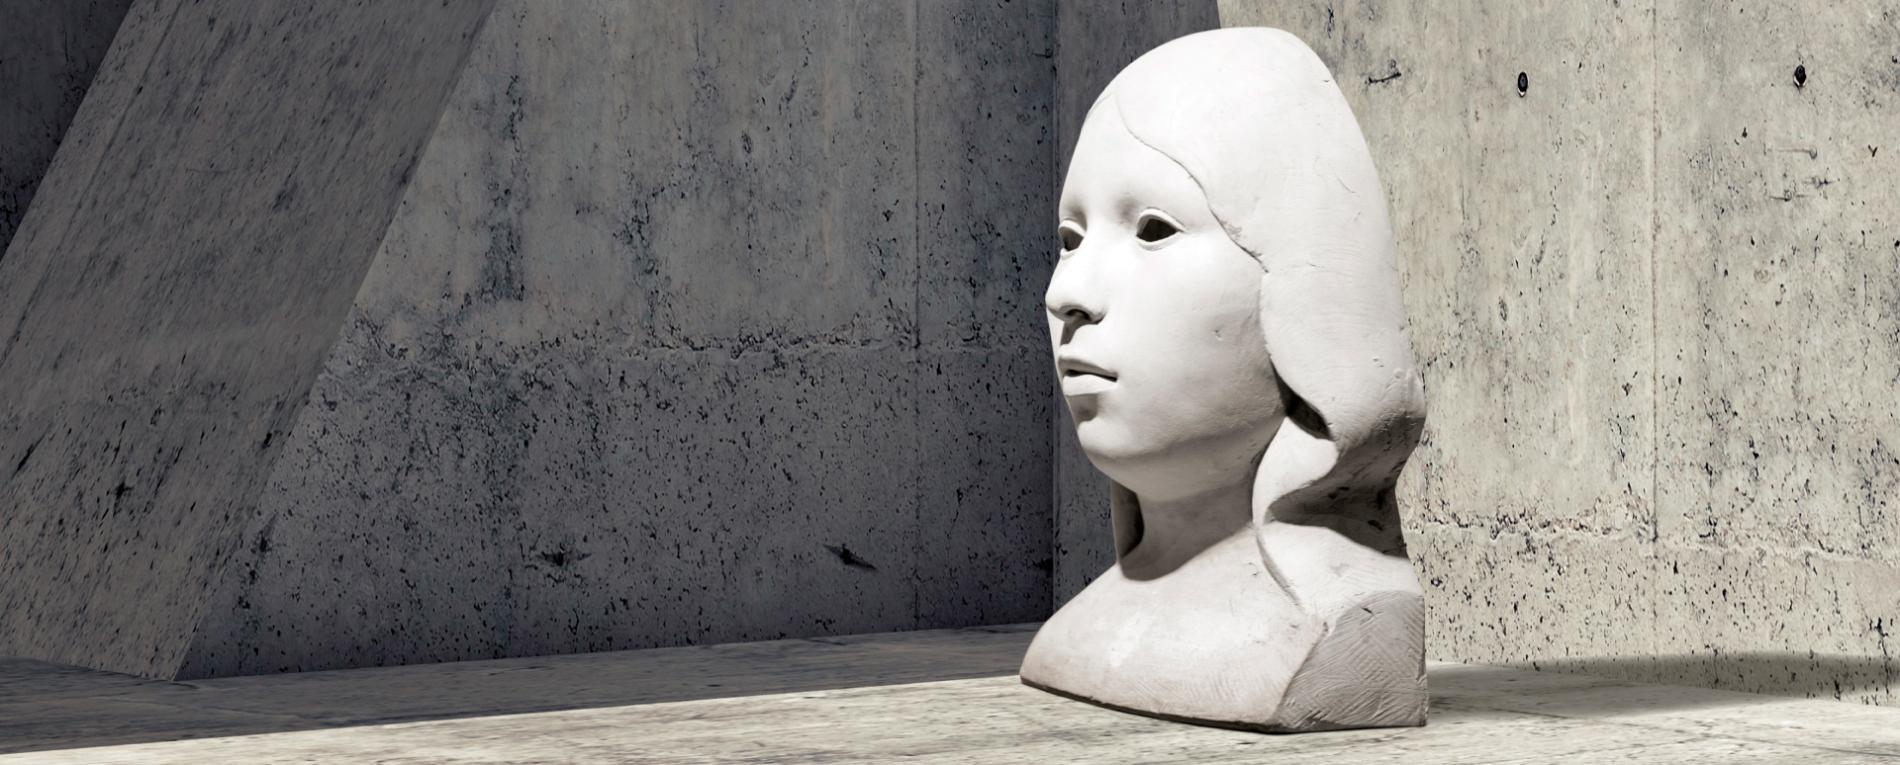 Giant stone bust